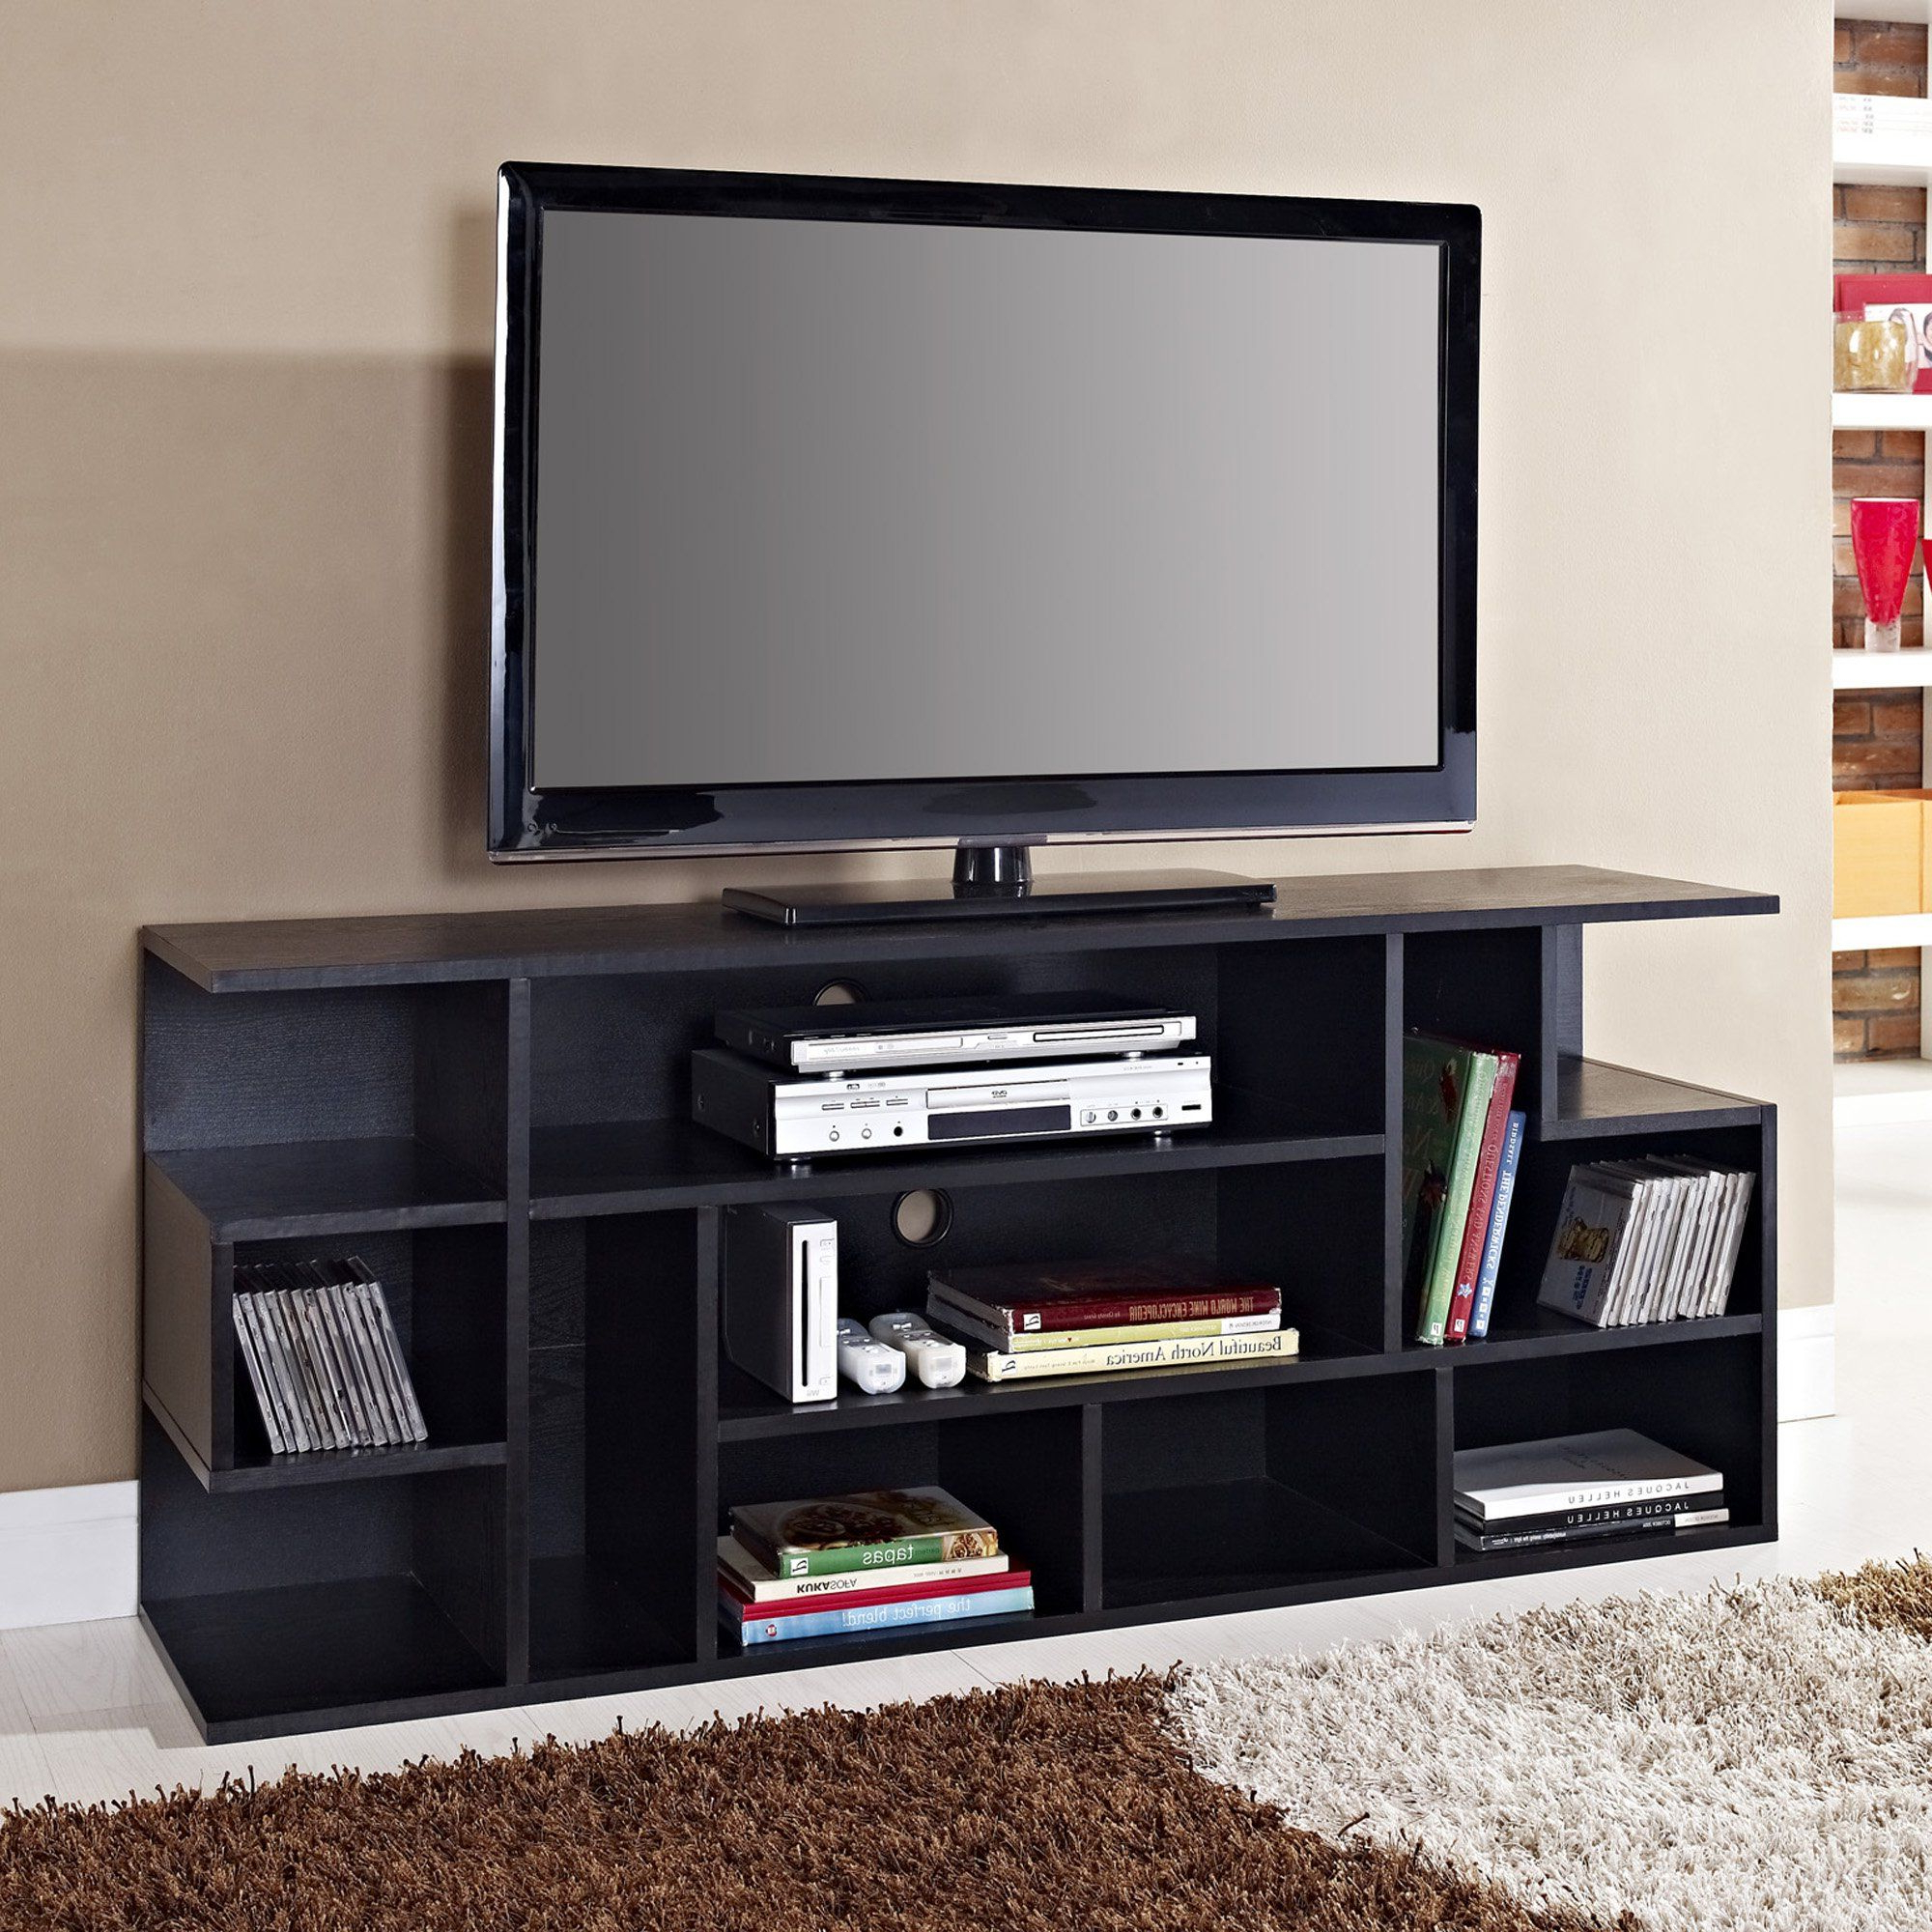 Amazon – We Furniture Wood Modern Style Tv Stand, 60 With Modern Black Floor Glass Tv Stands With Mount (View 3 of 20)